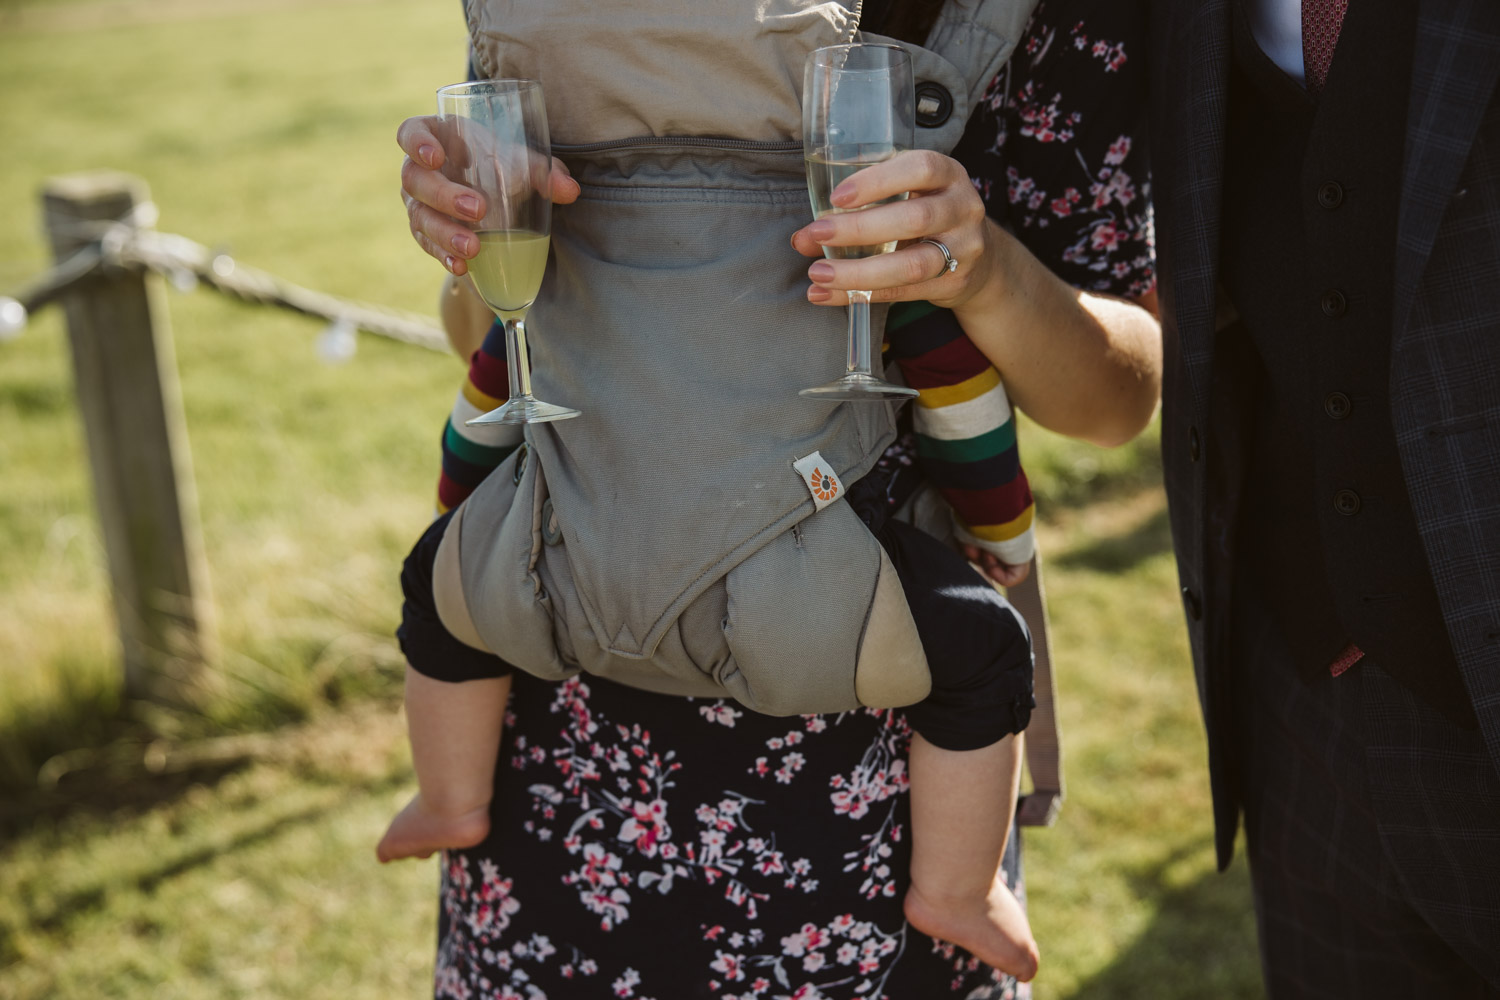 a baby in a sling with the legs mirroring the mum carrying two champagne glasses